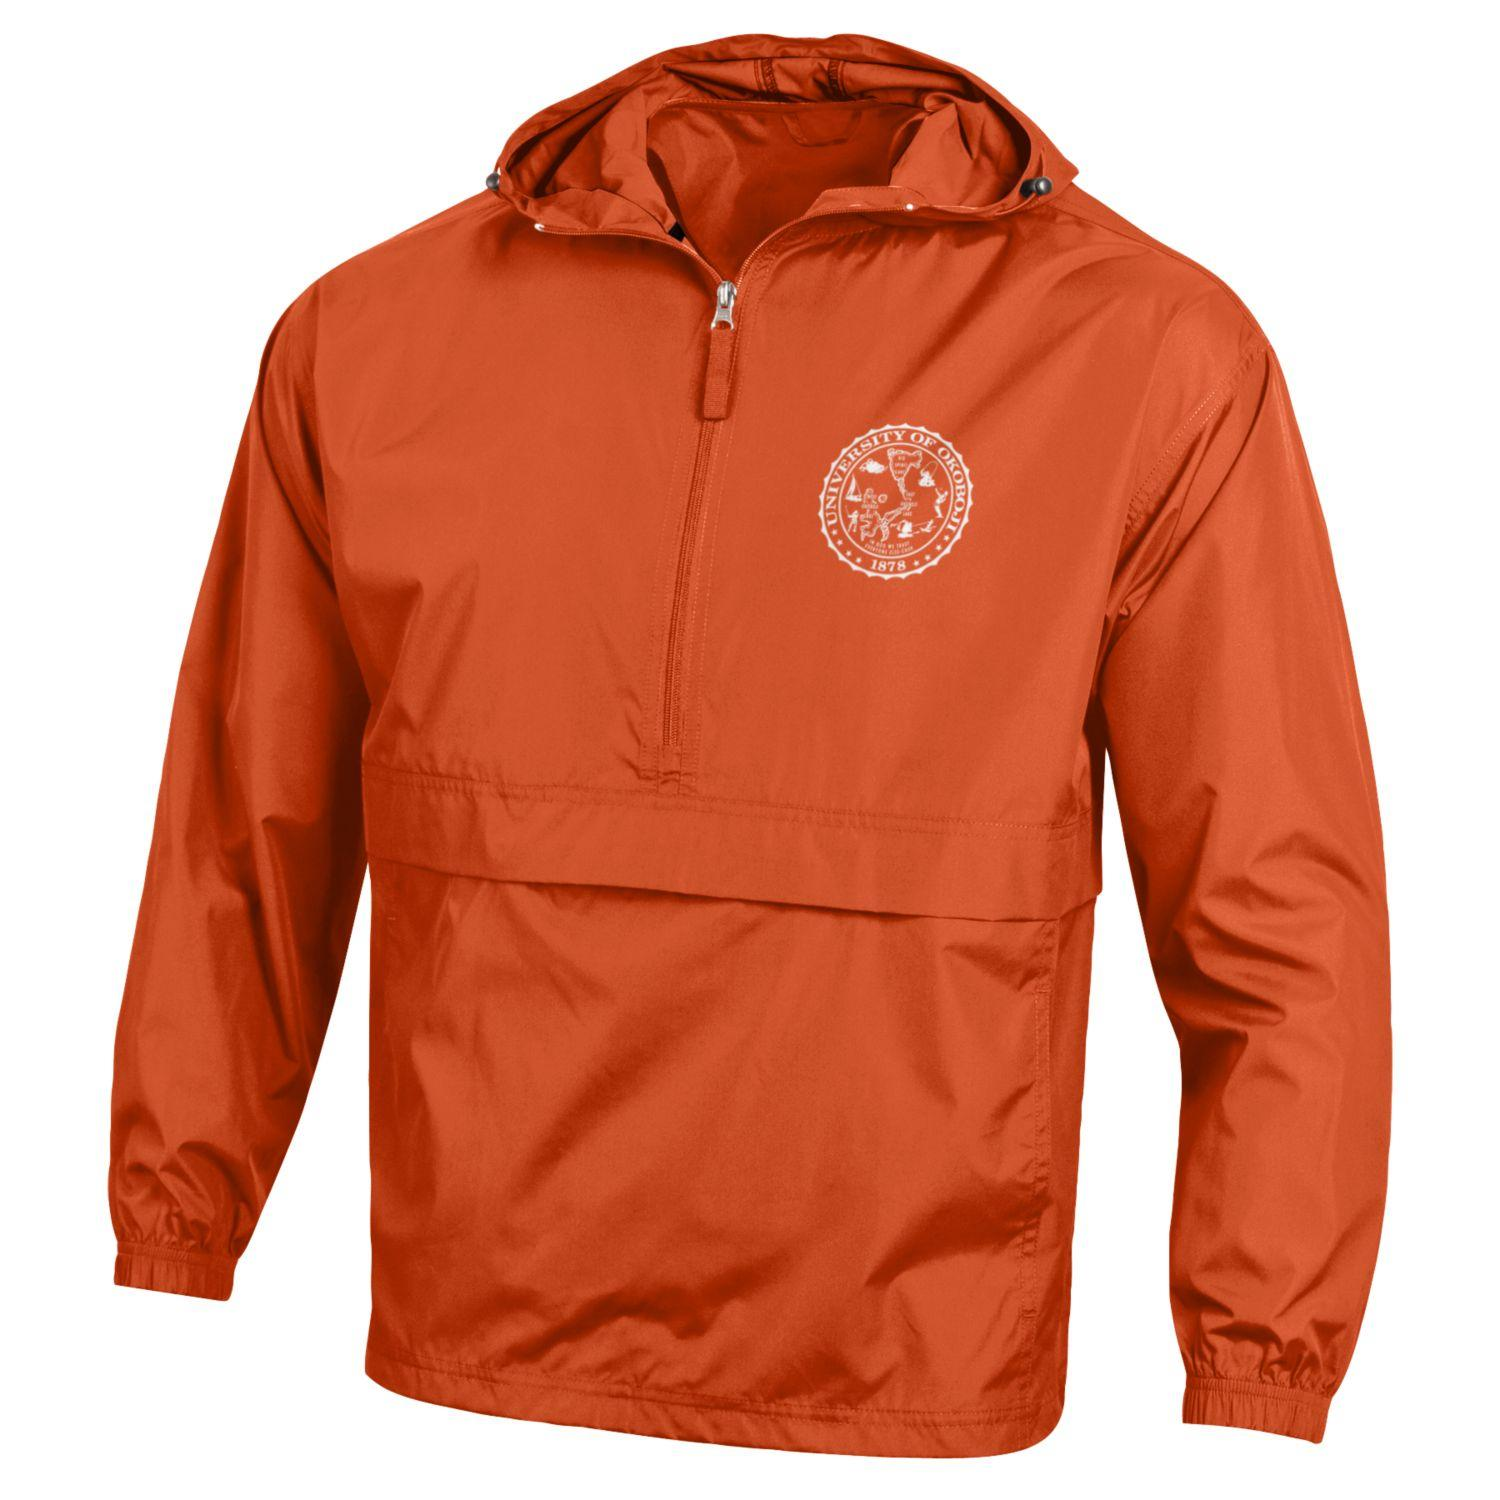 9f84662e Champion Packable Jacket - Orange - The Three Sons